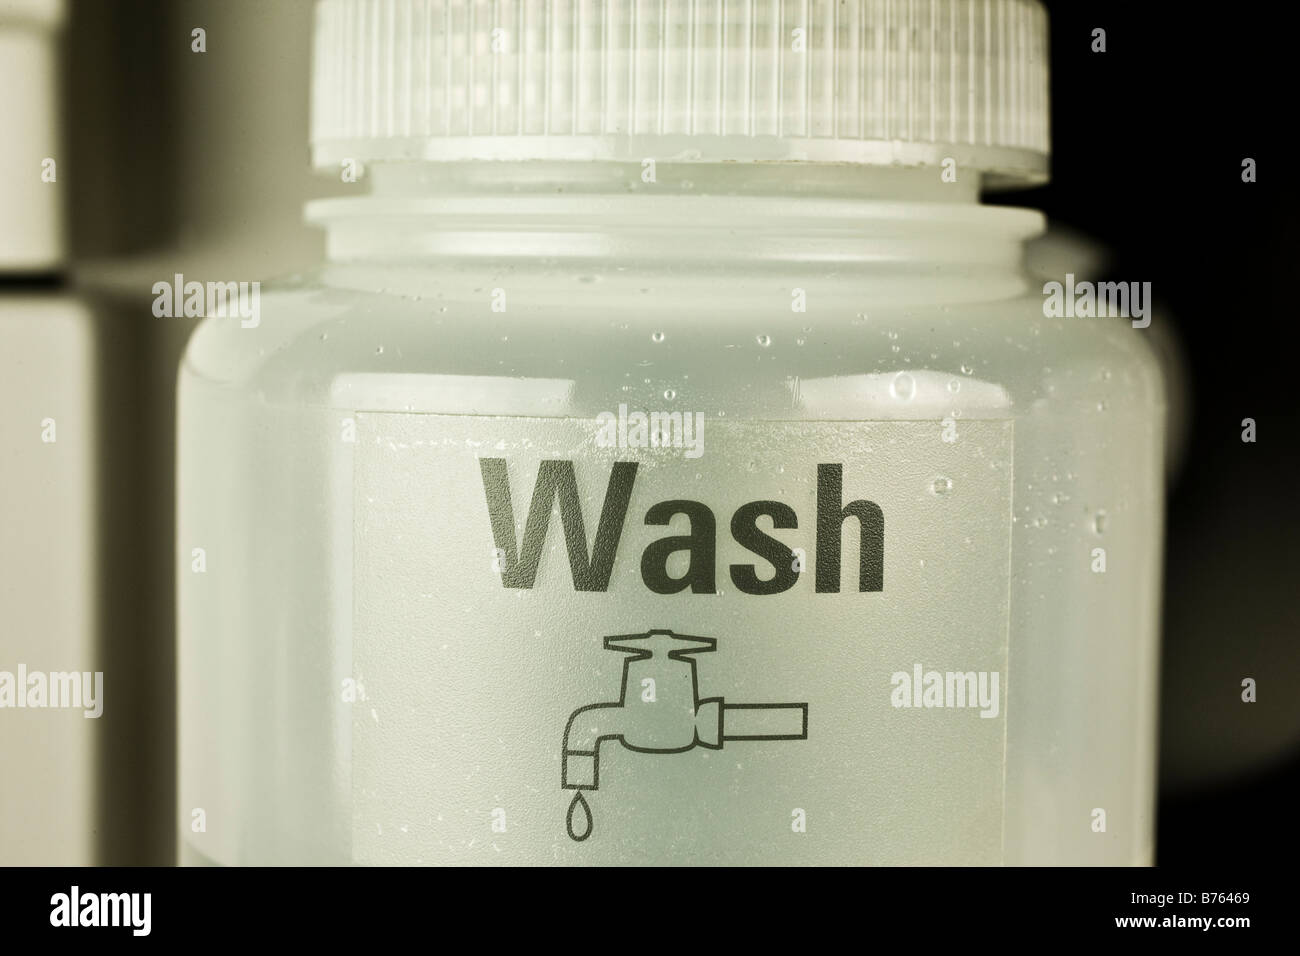 Wash collection vessel for atomic absorption autosampler, Stock Photo